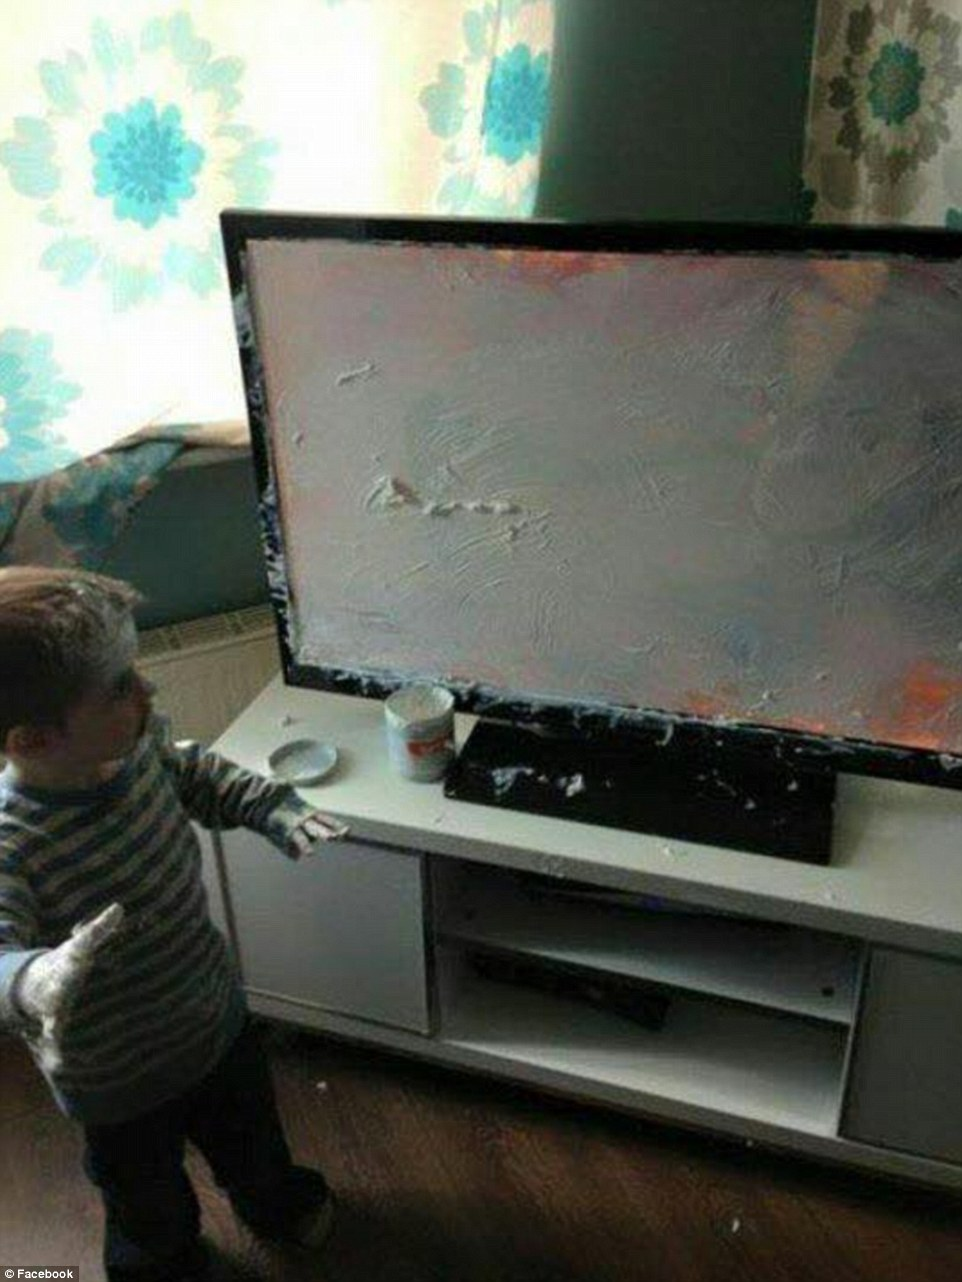 3203444F00000578-3483248-Art_attack_One_young_boy_thought_that_the_TV_would_make_a_good_s-a-45_1457527781667